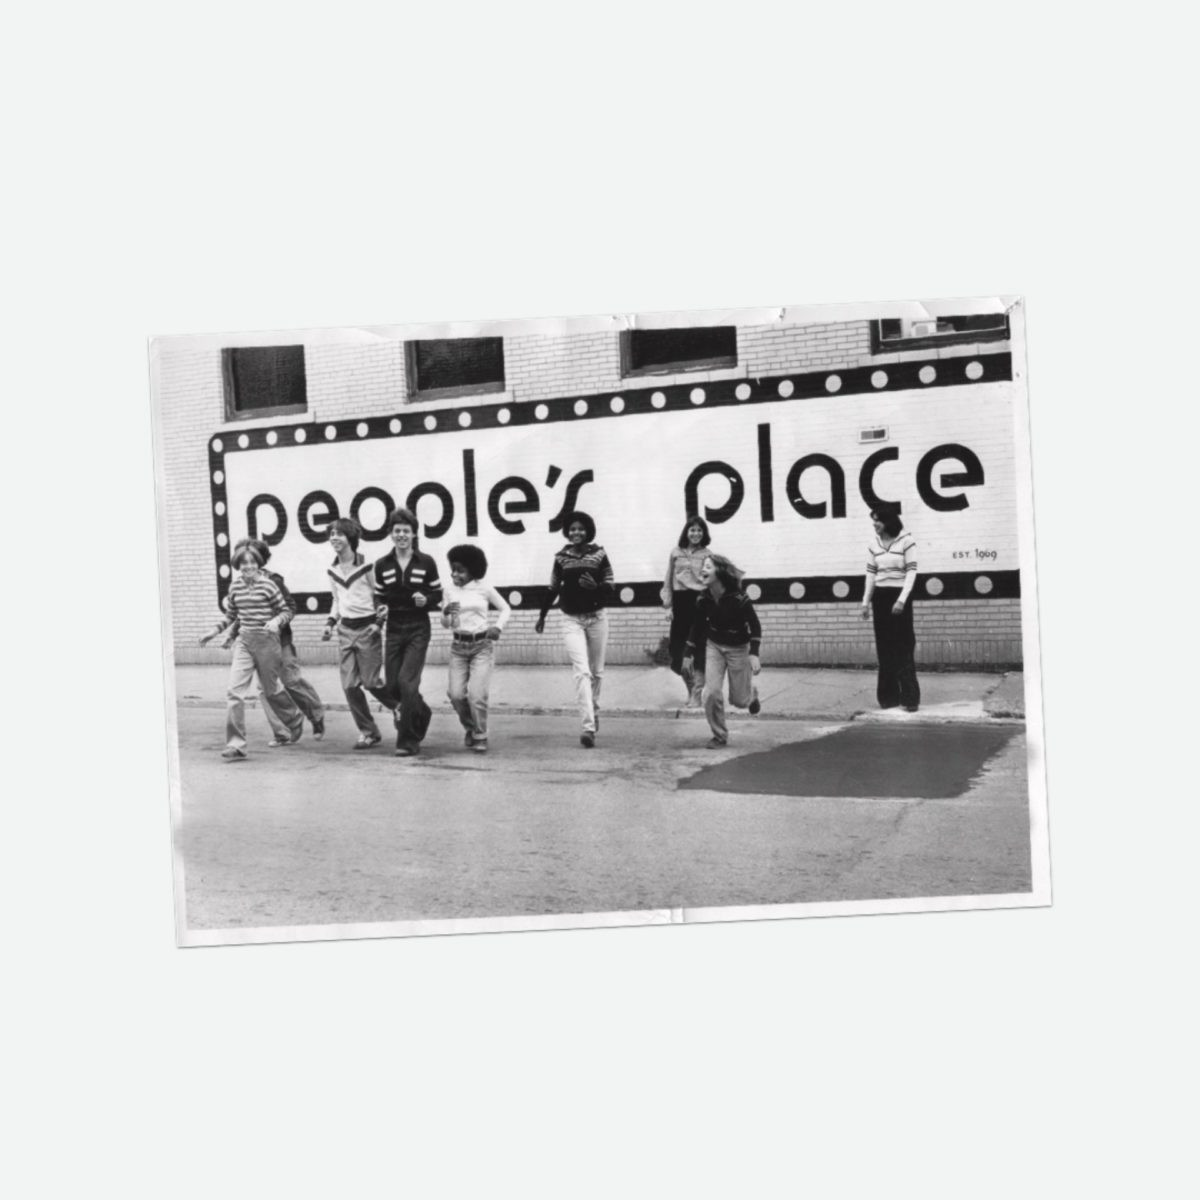 People's Place. Photographed by Peoples Place partner and co-founder Larry Stemerman, circa 1970